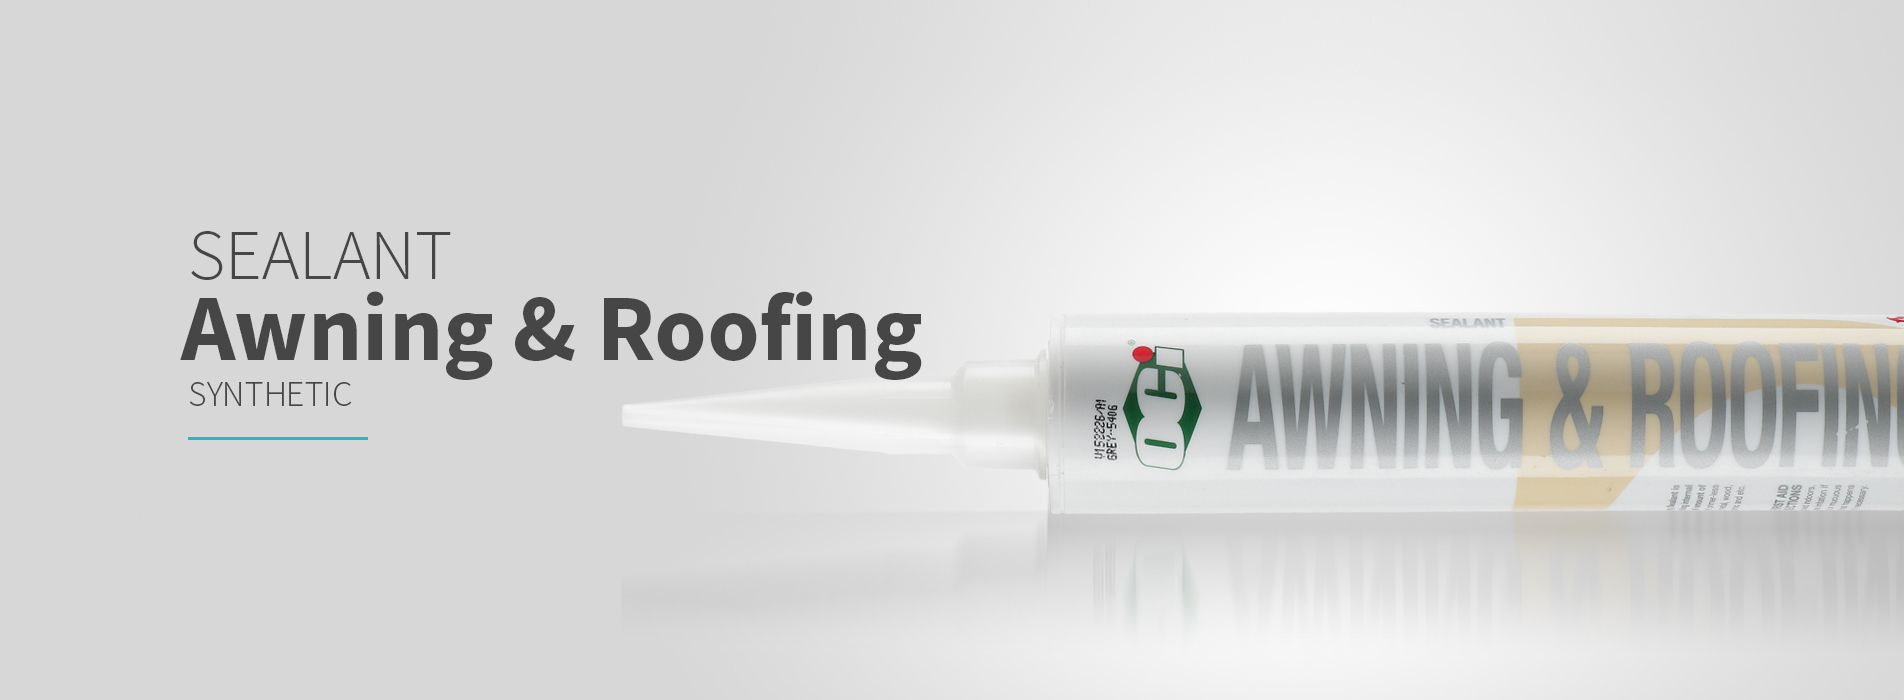 OCI Awning & Roofing Sealant for interior and exterior applications containers, roofs, external walling, window and door caulking